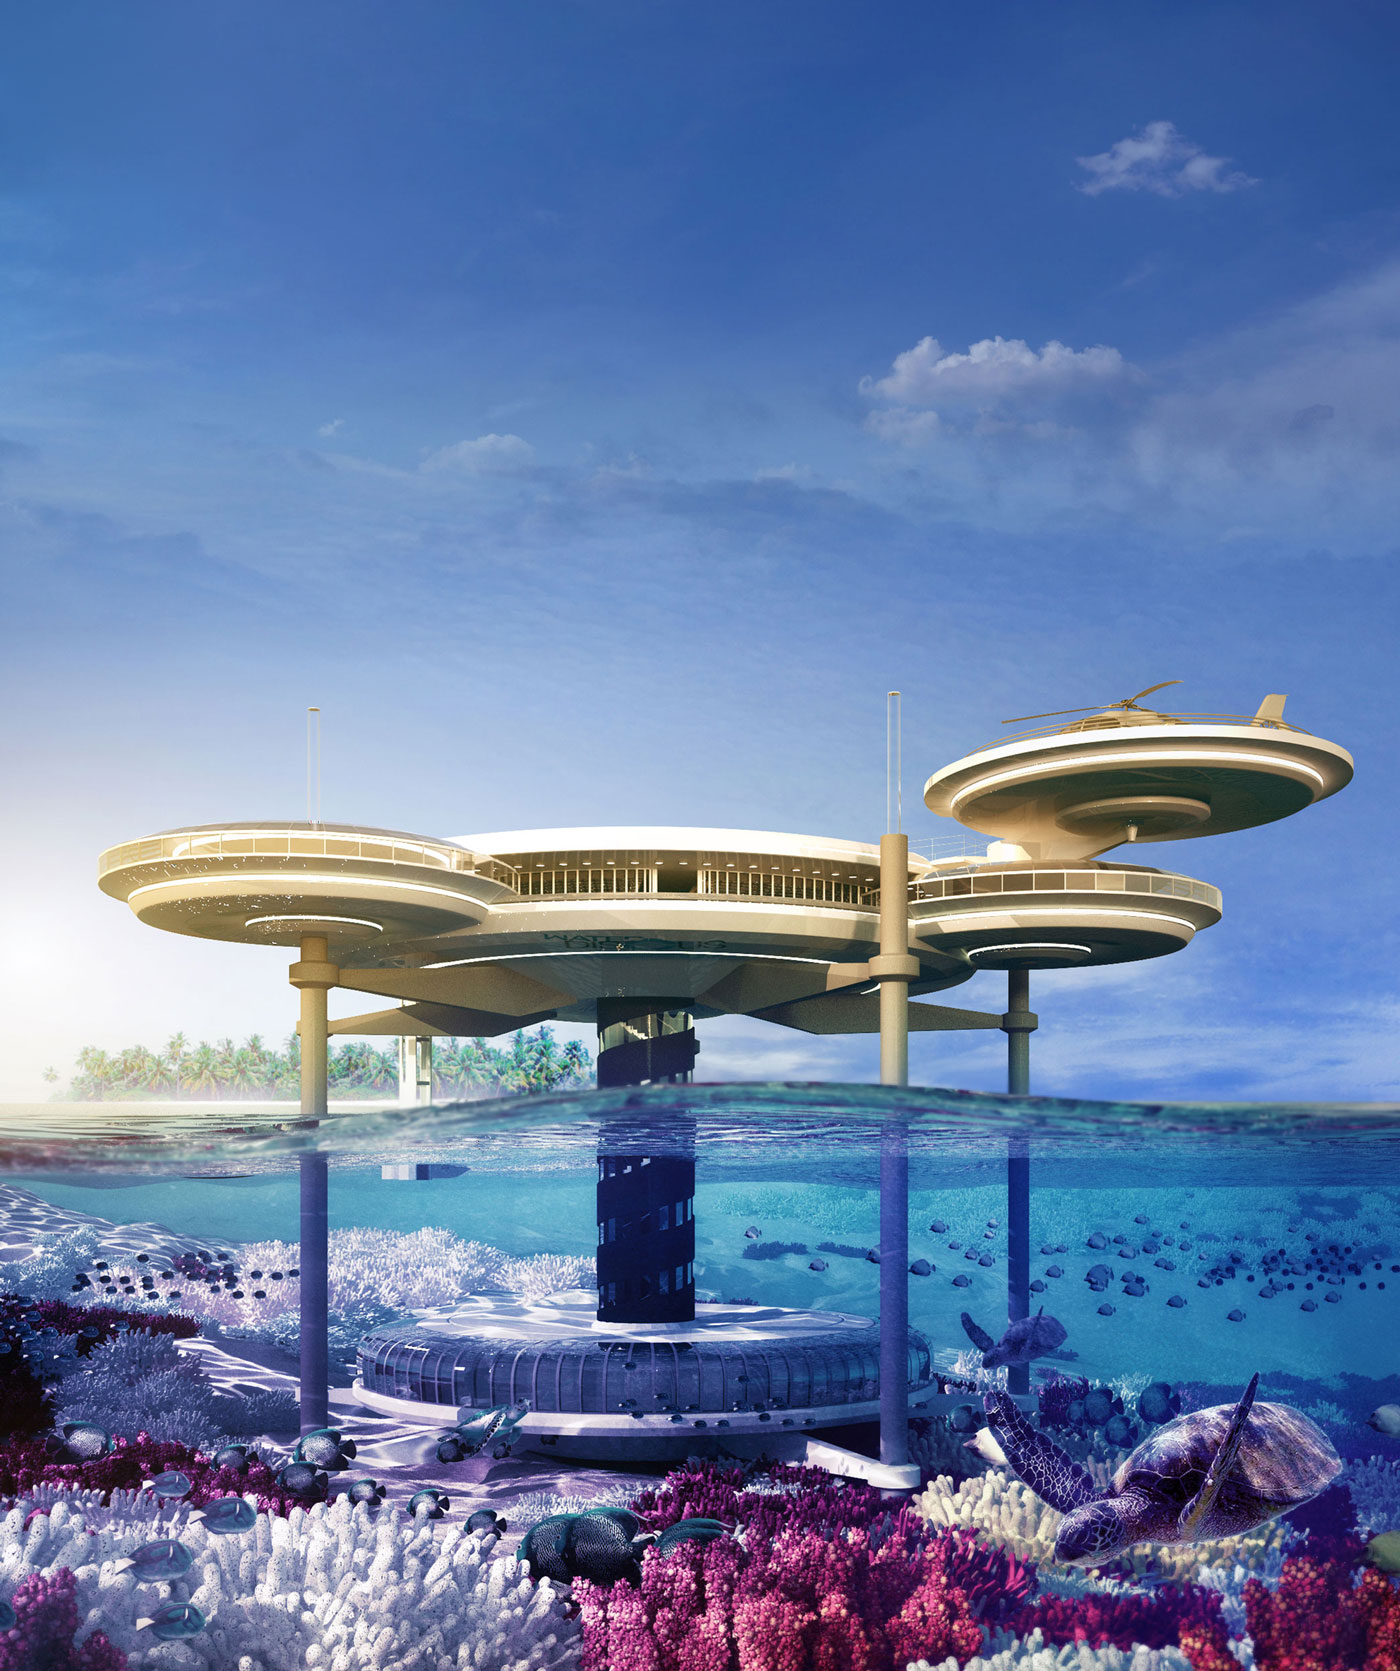 The Water Discus Underwater Hotel planned for Dubai (1)